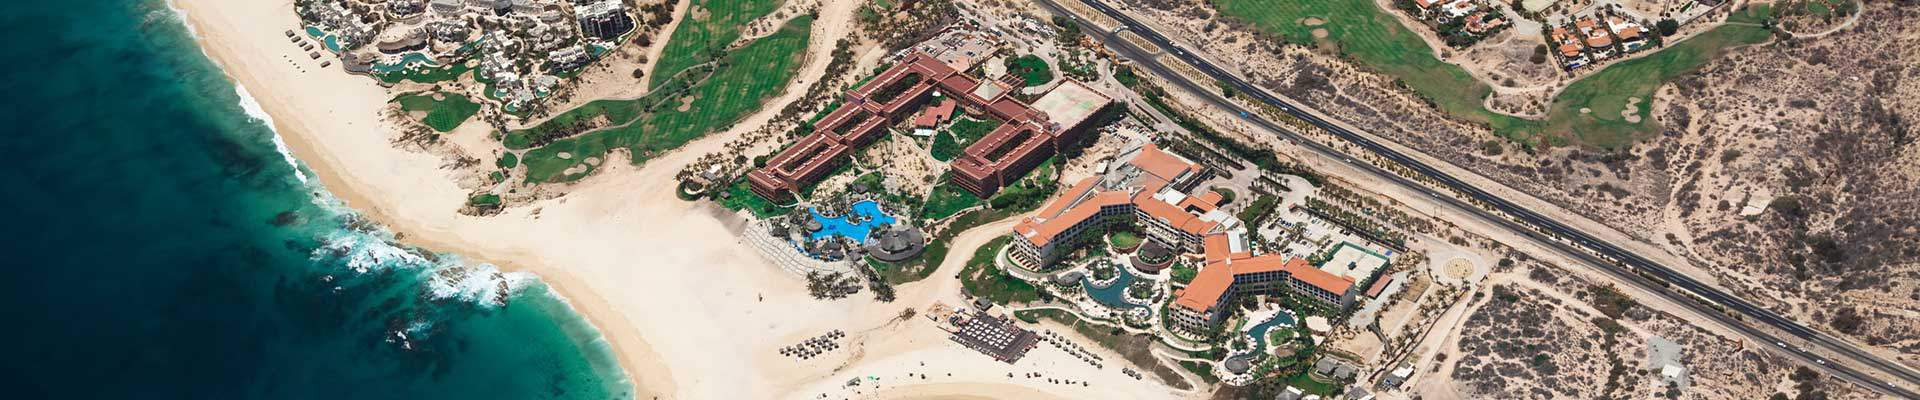 properties-for-sale-los-cabos-real-estate